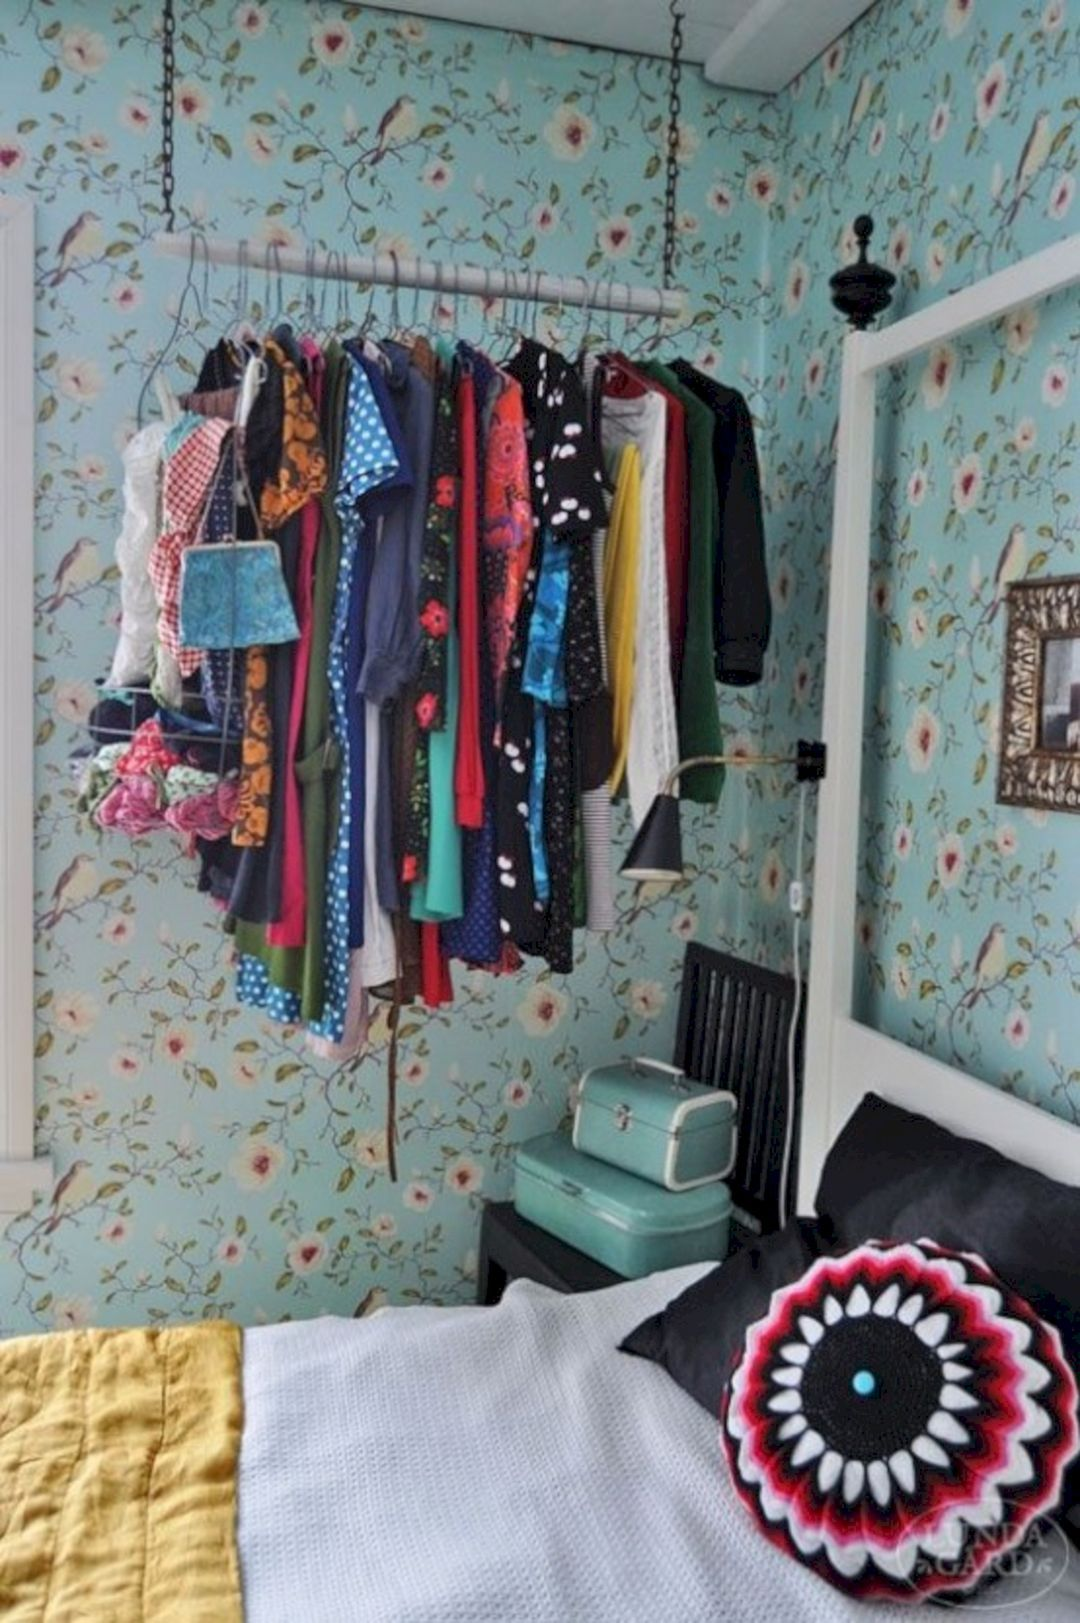 25 Creative Storage Ideas For Clothes That House Looks